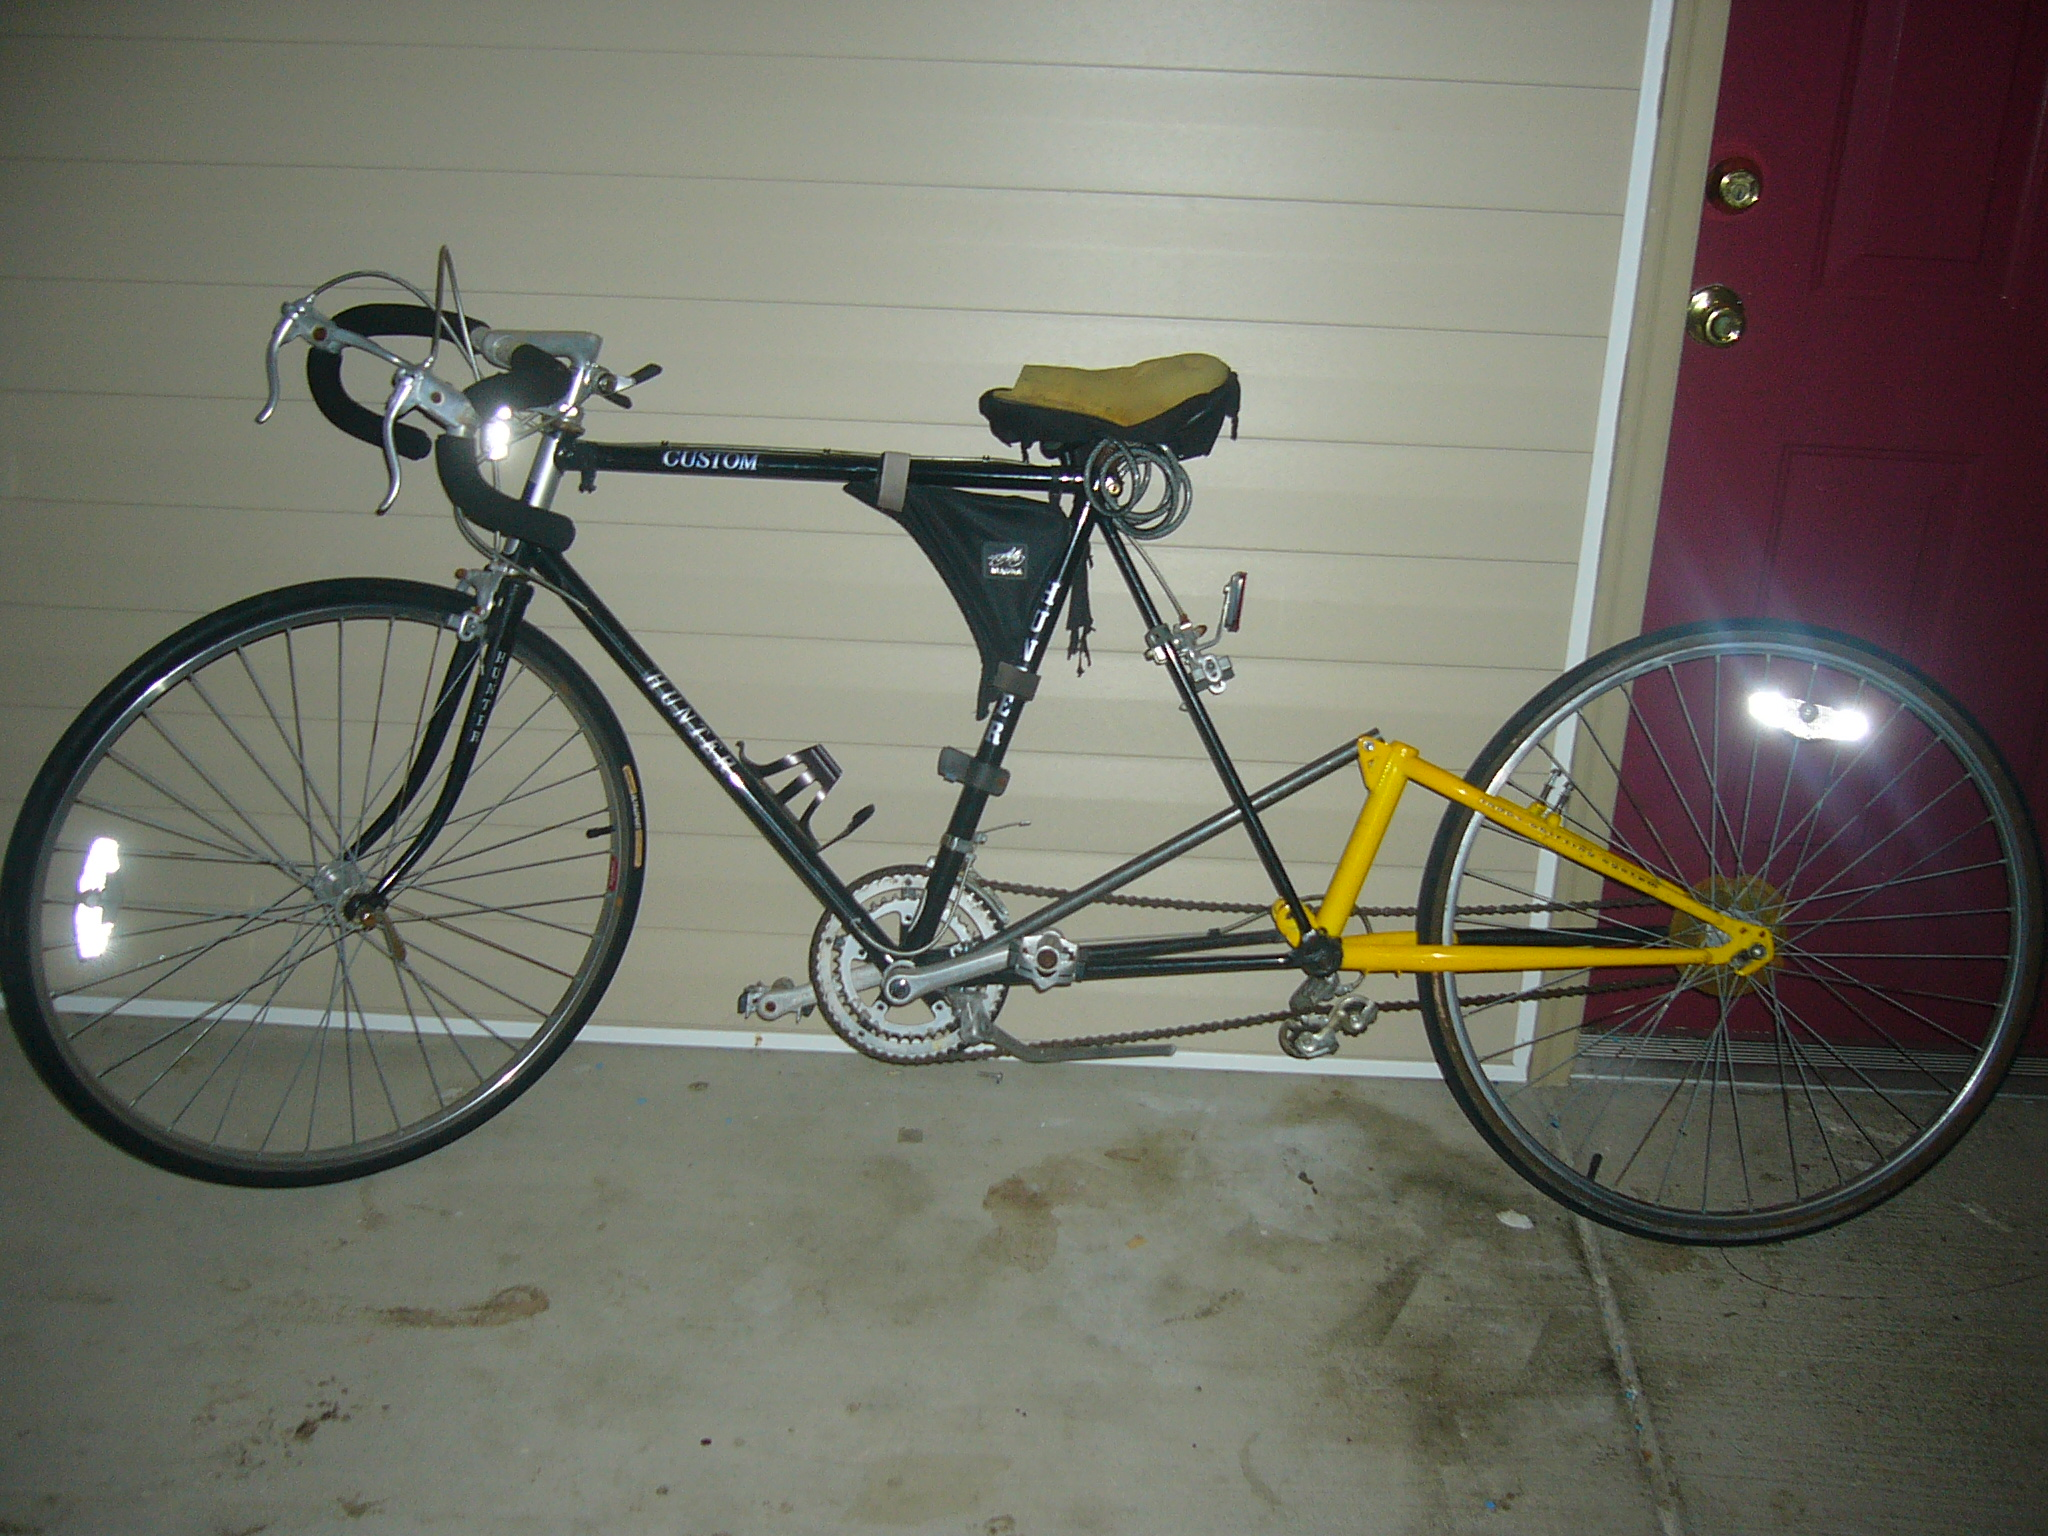 Homemade Sport Utility Bike (SUB)